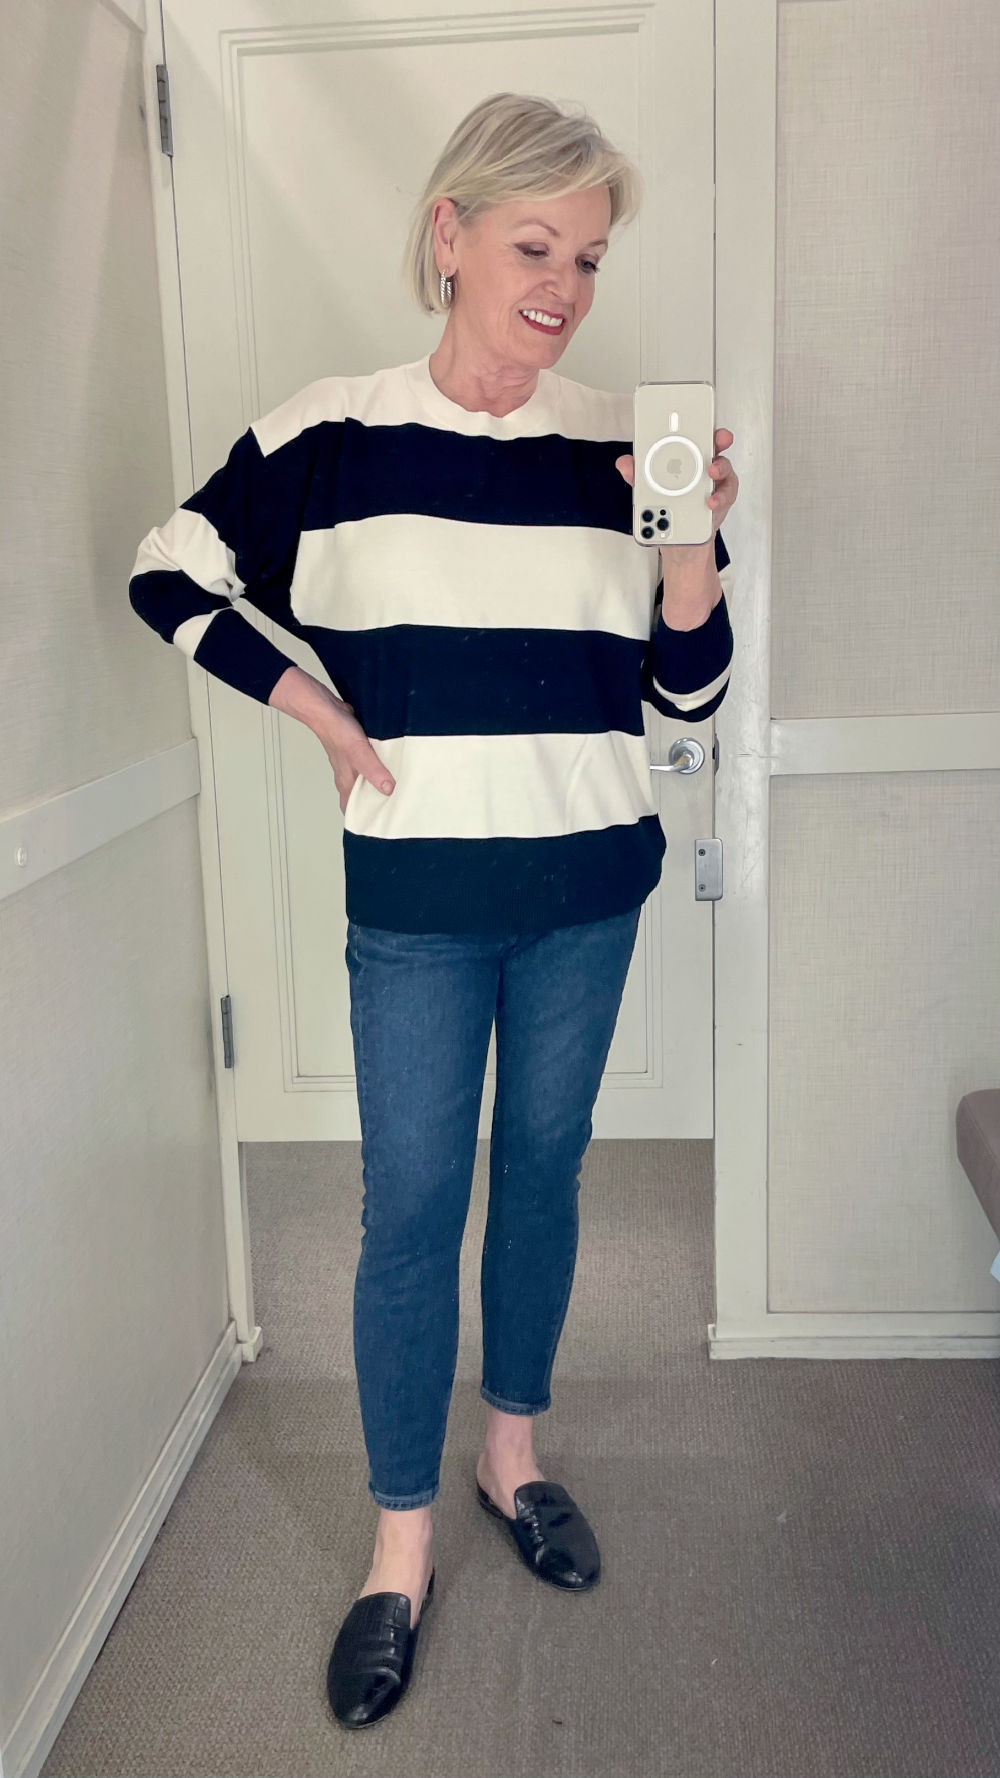 woman in Loft dressing room wearing striped sweater and skinny jeans